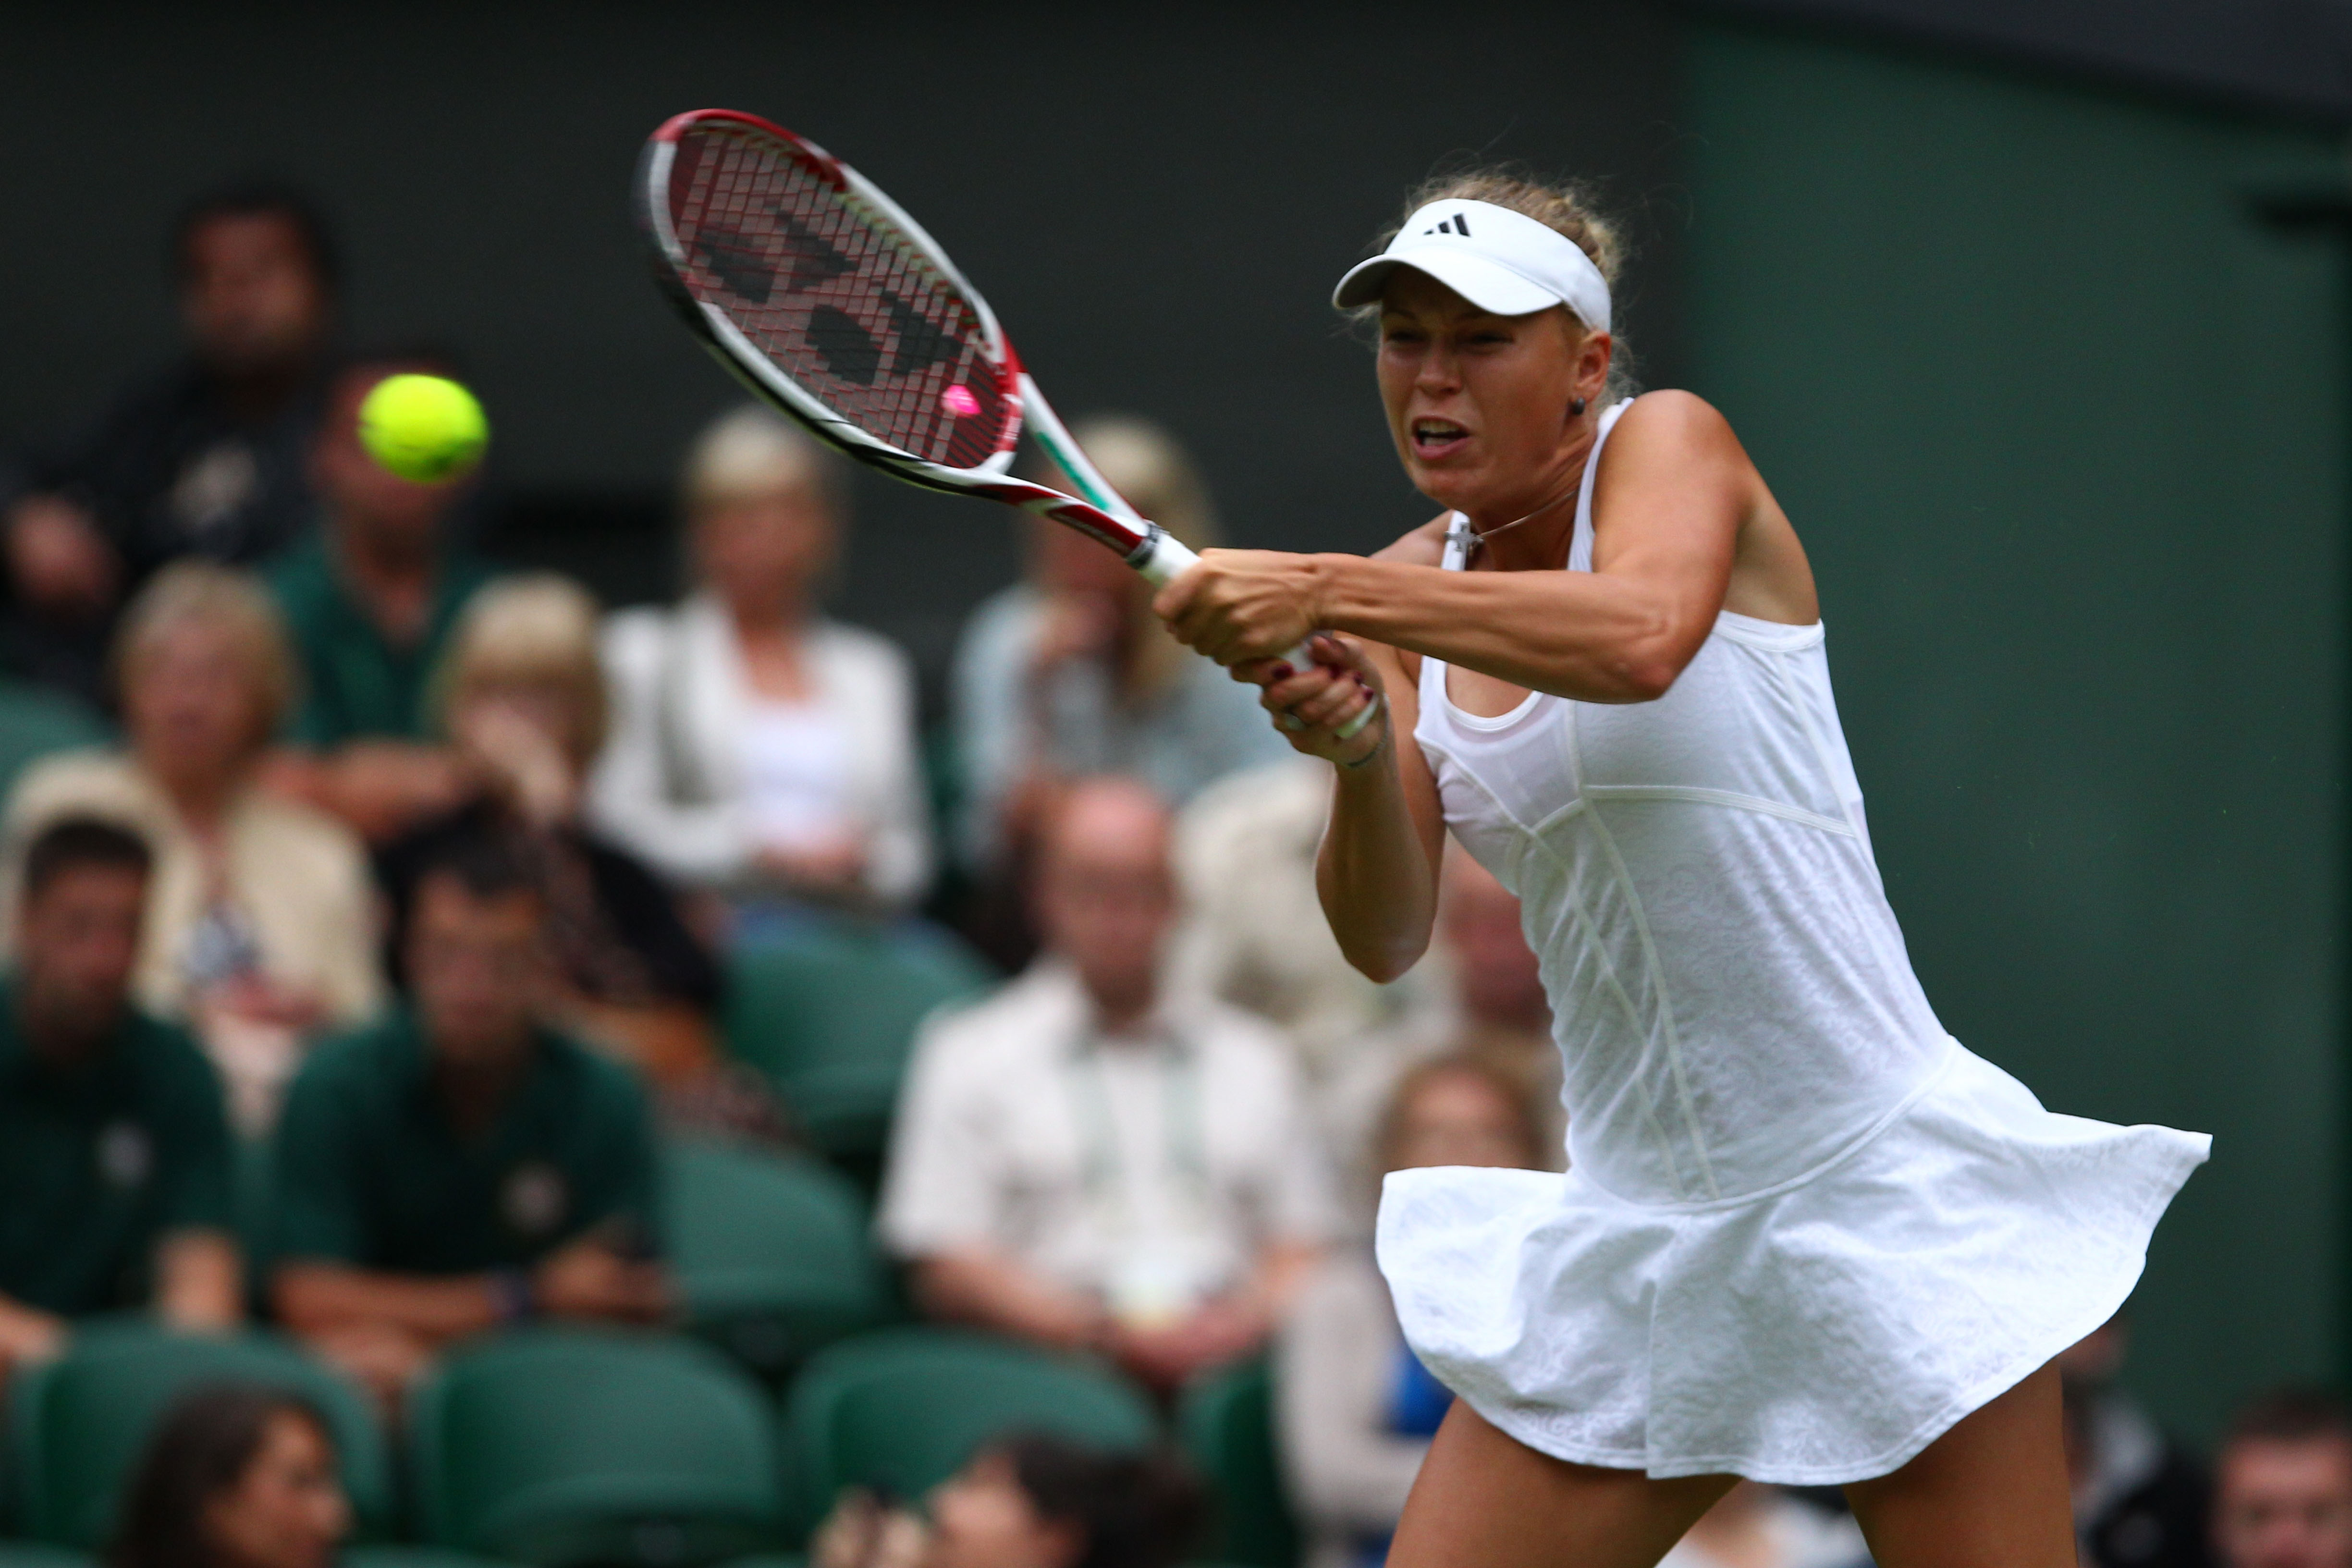 The perfect Wimbledon dress that lasted for just one match. Wozniacki lost to Tamira Pazcek in the first round.